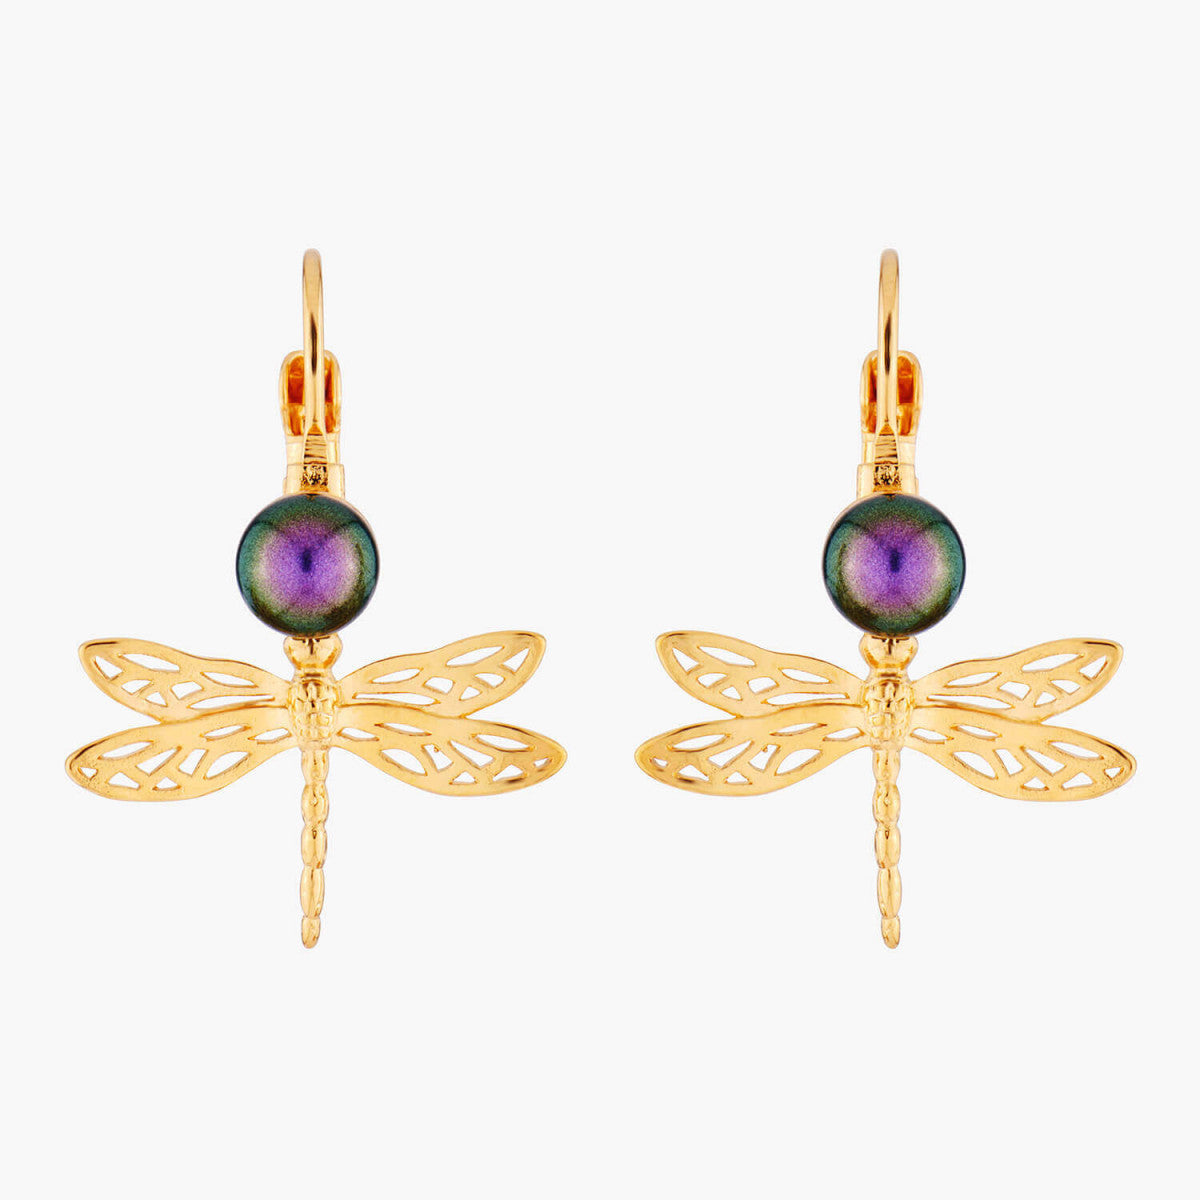 Small Dragonfly Dormeuses Earrings